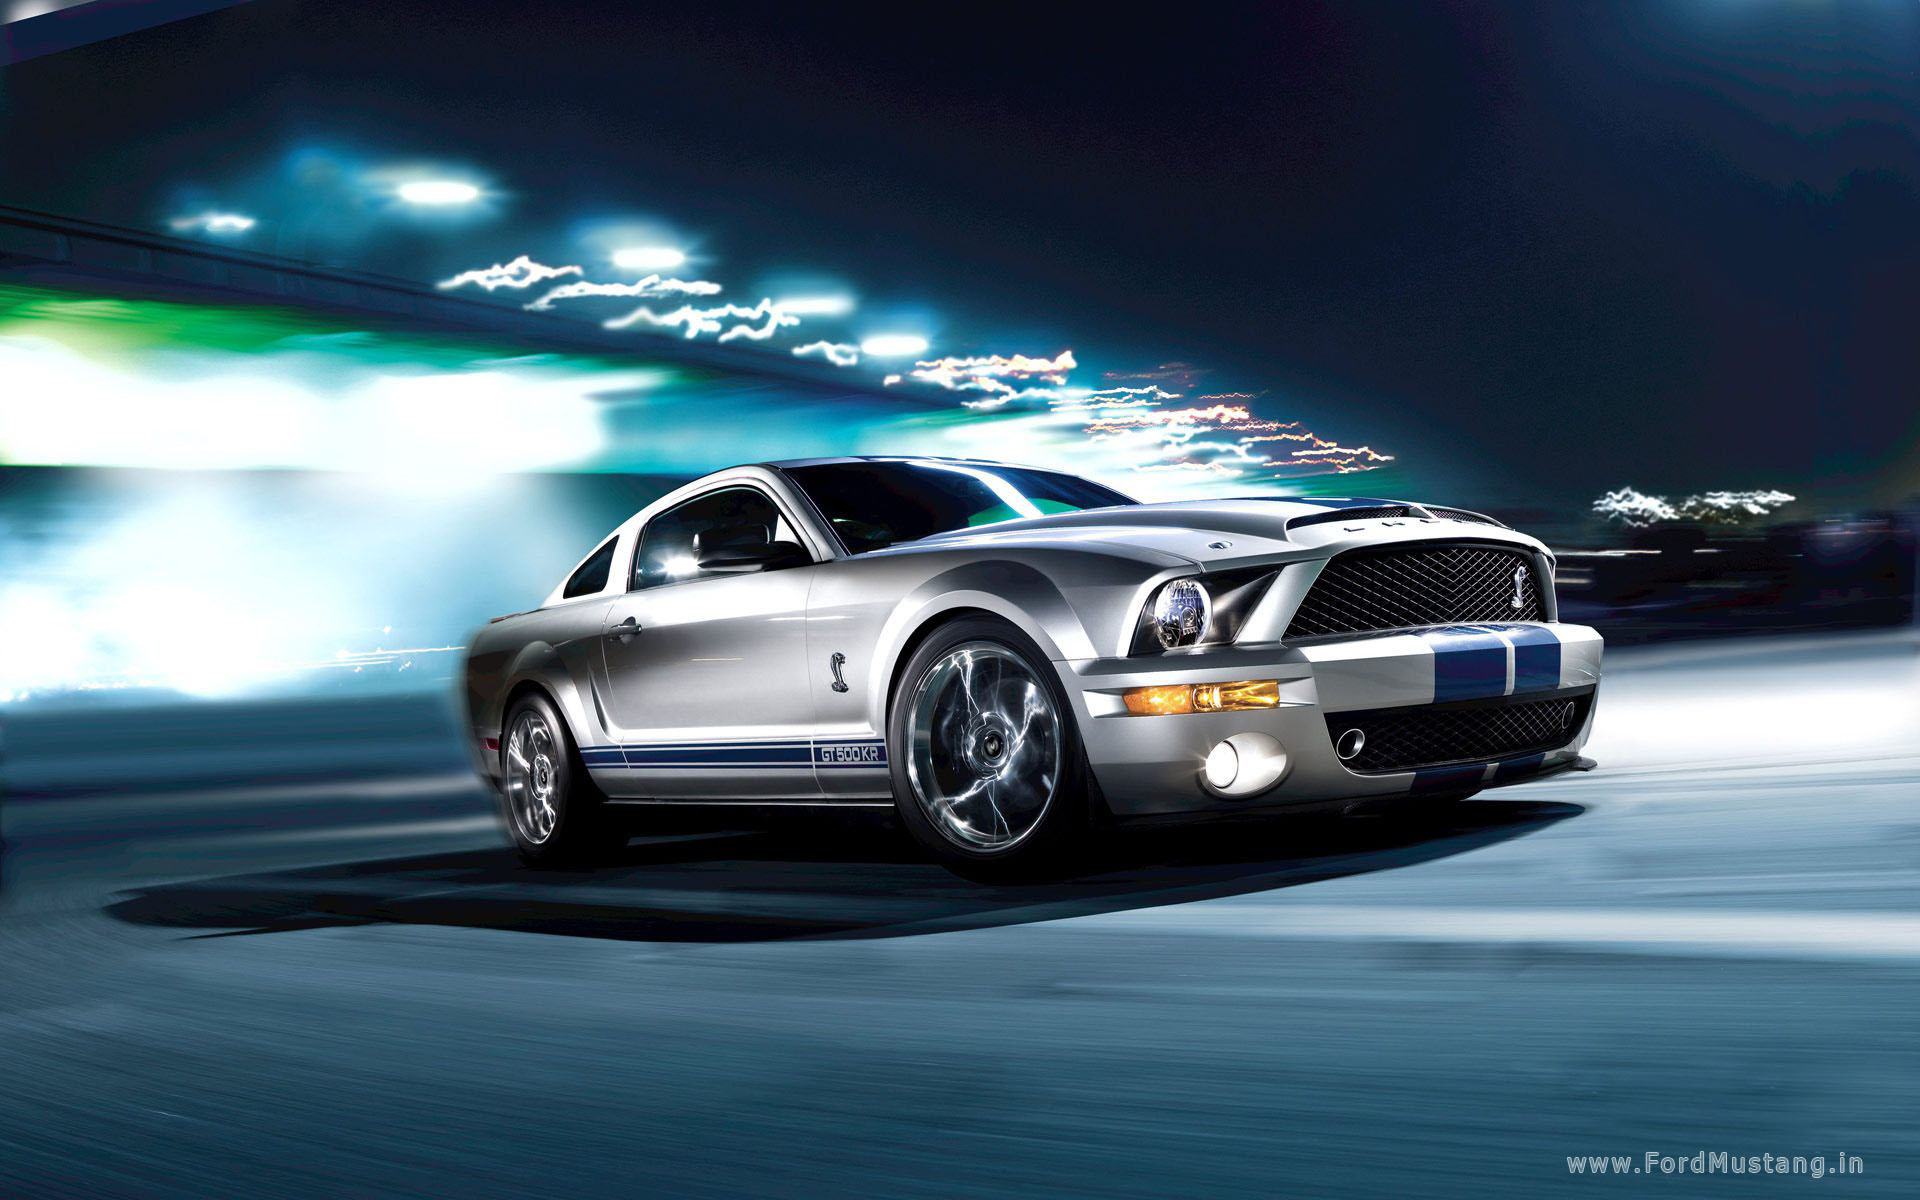 Ford Mustang wallpapers   Ford Mustang